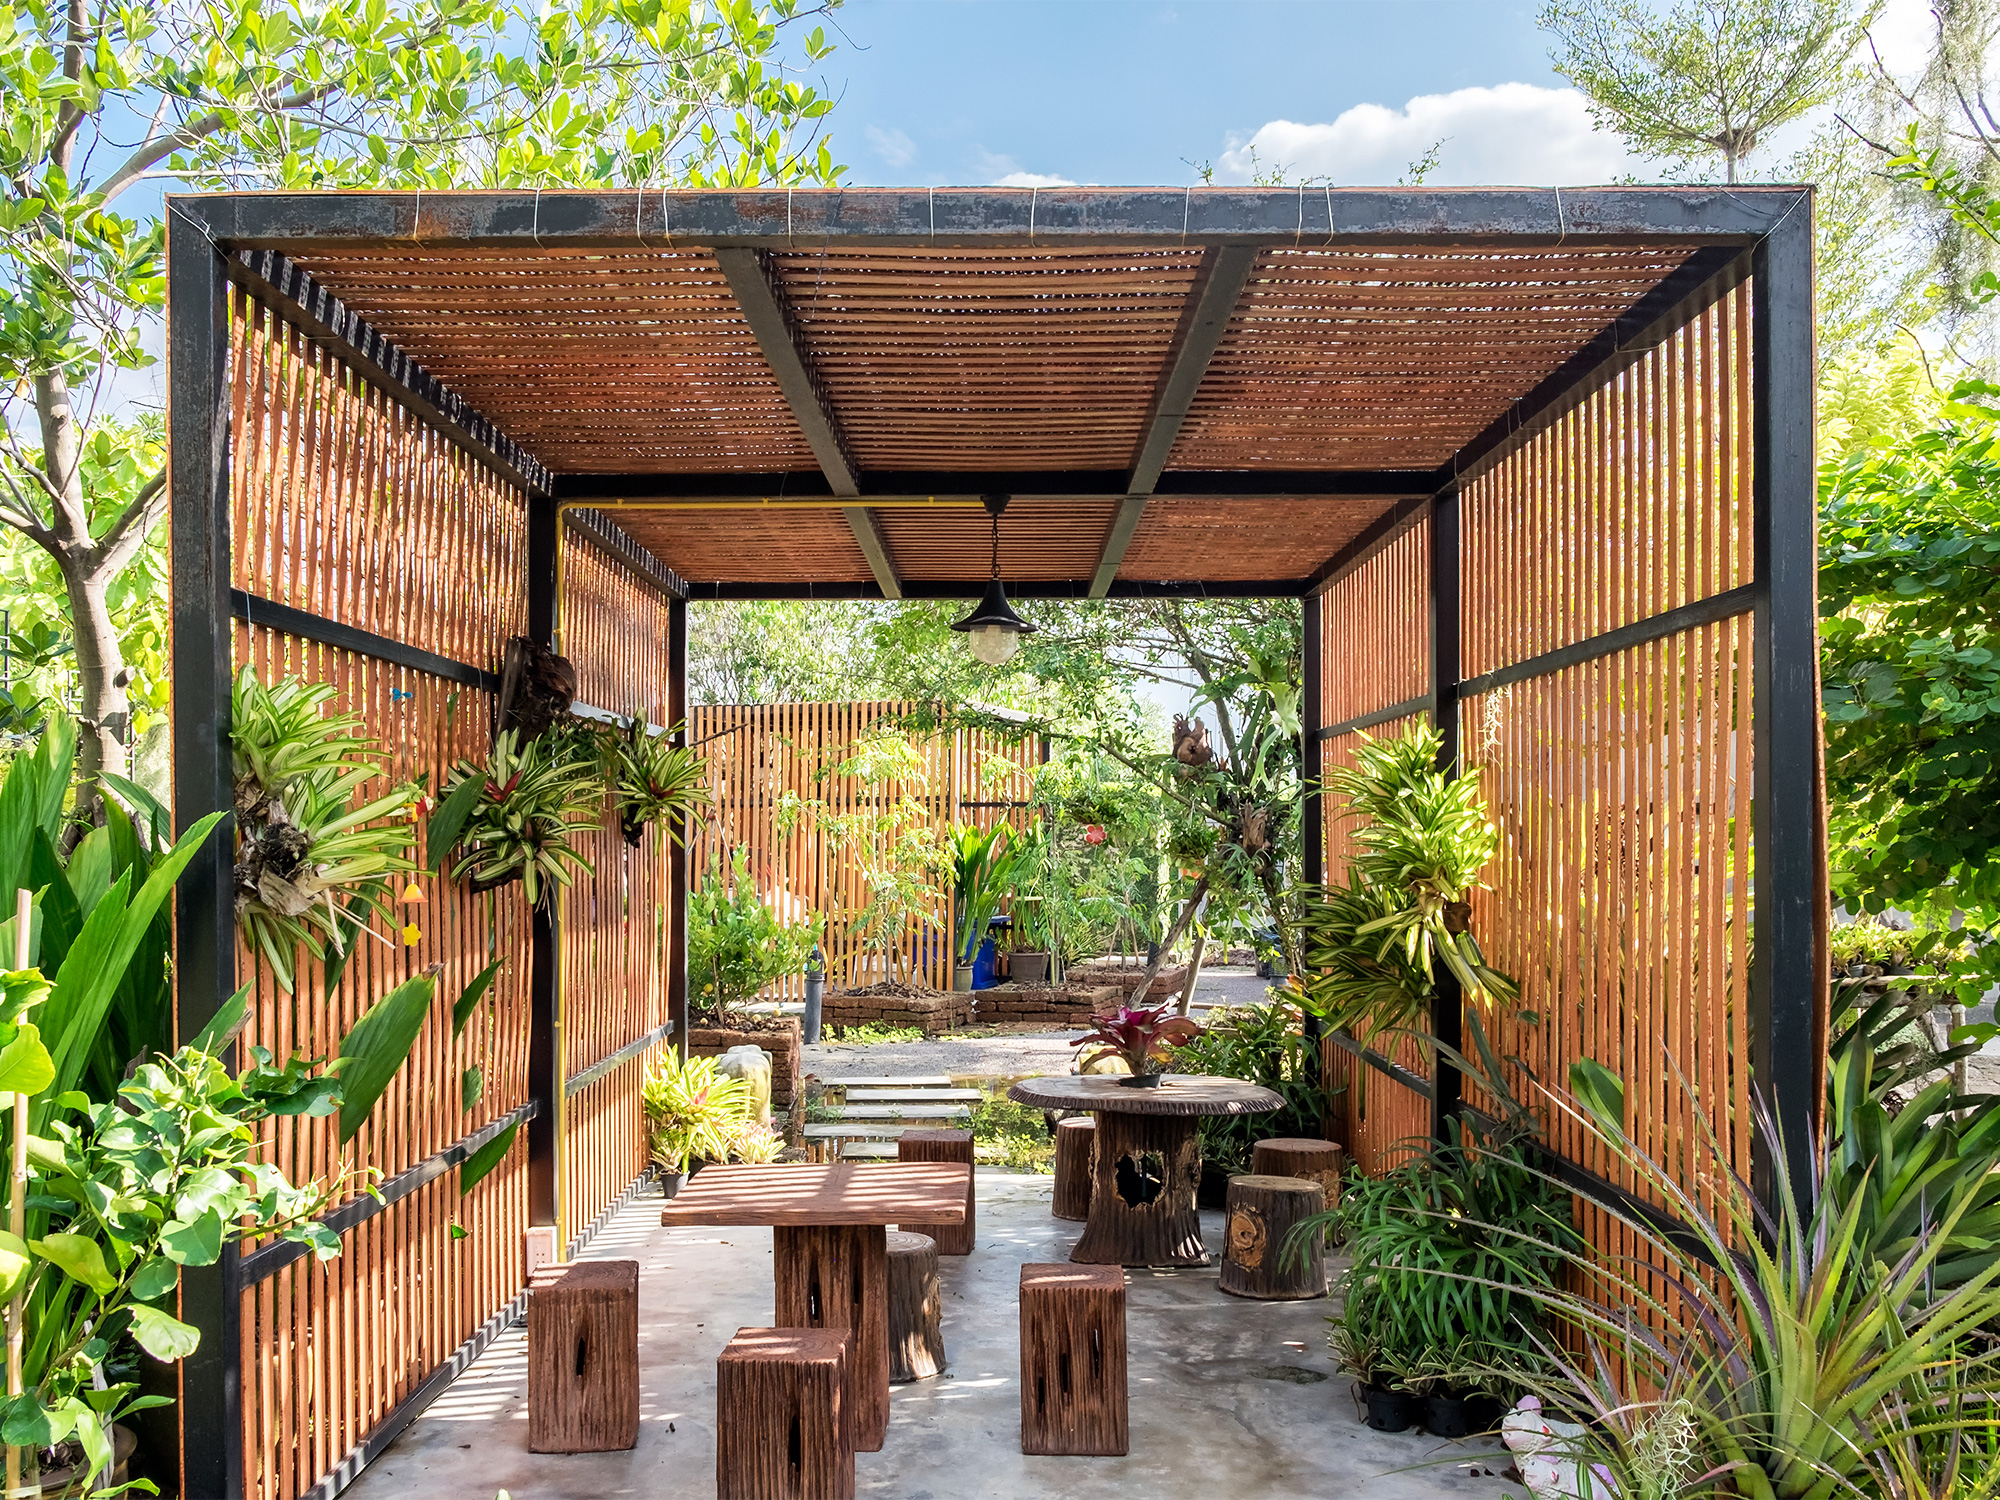 Tropical Garden Design Ideas To Inspire Your Outdoor Space ... on Tropical Backyard Landscaping  id=29700